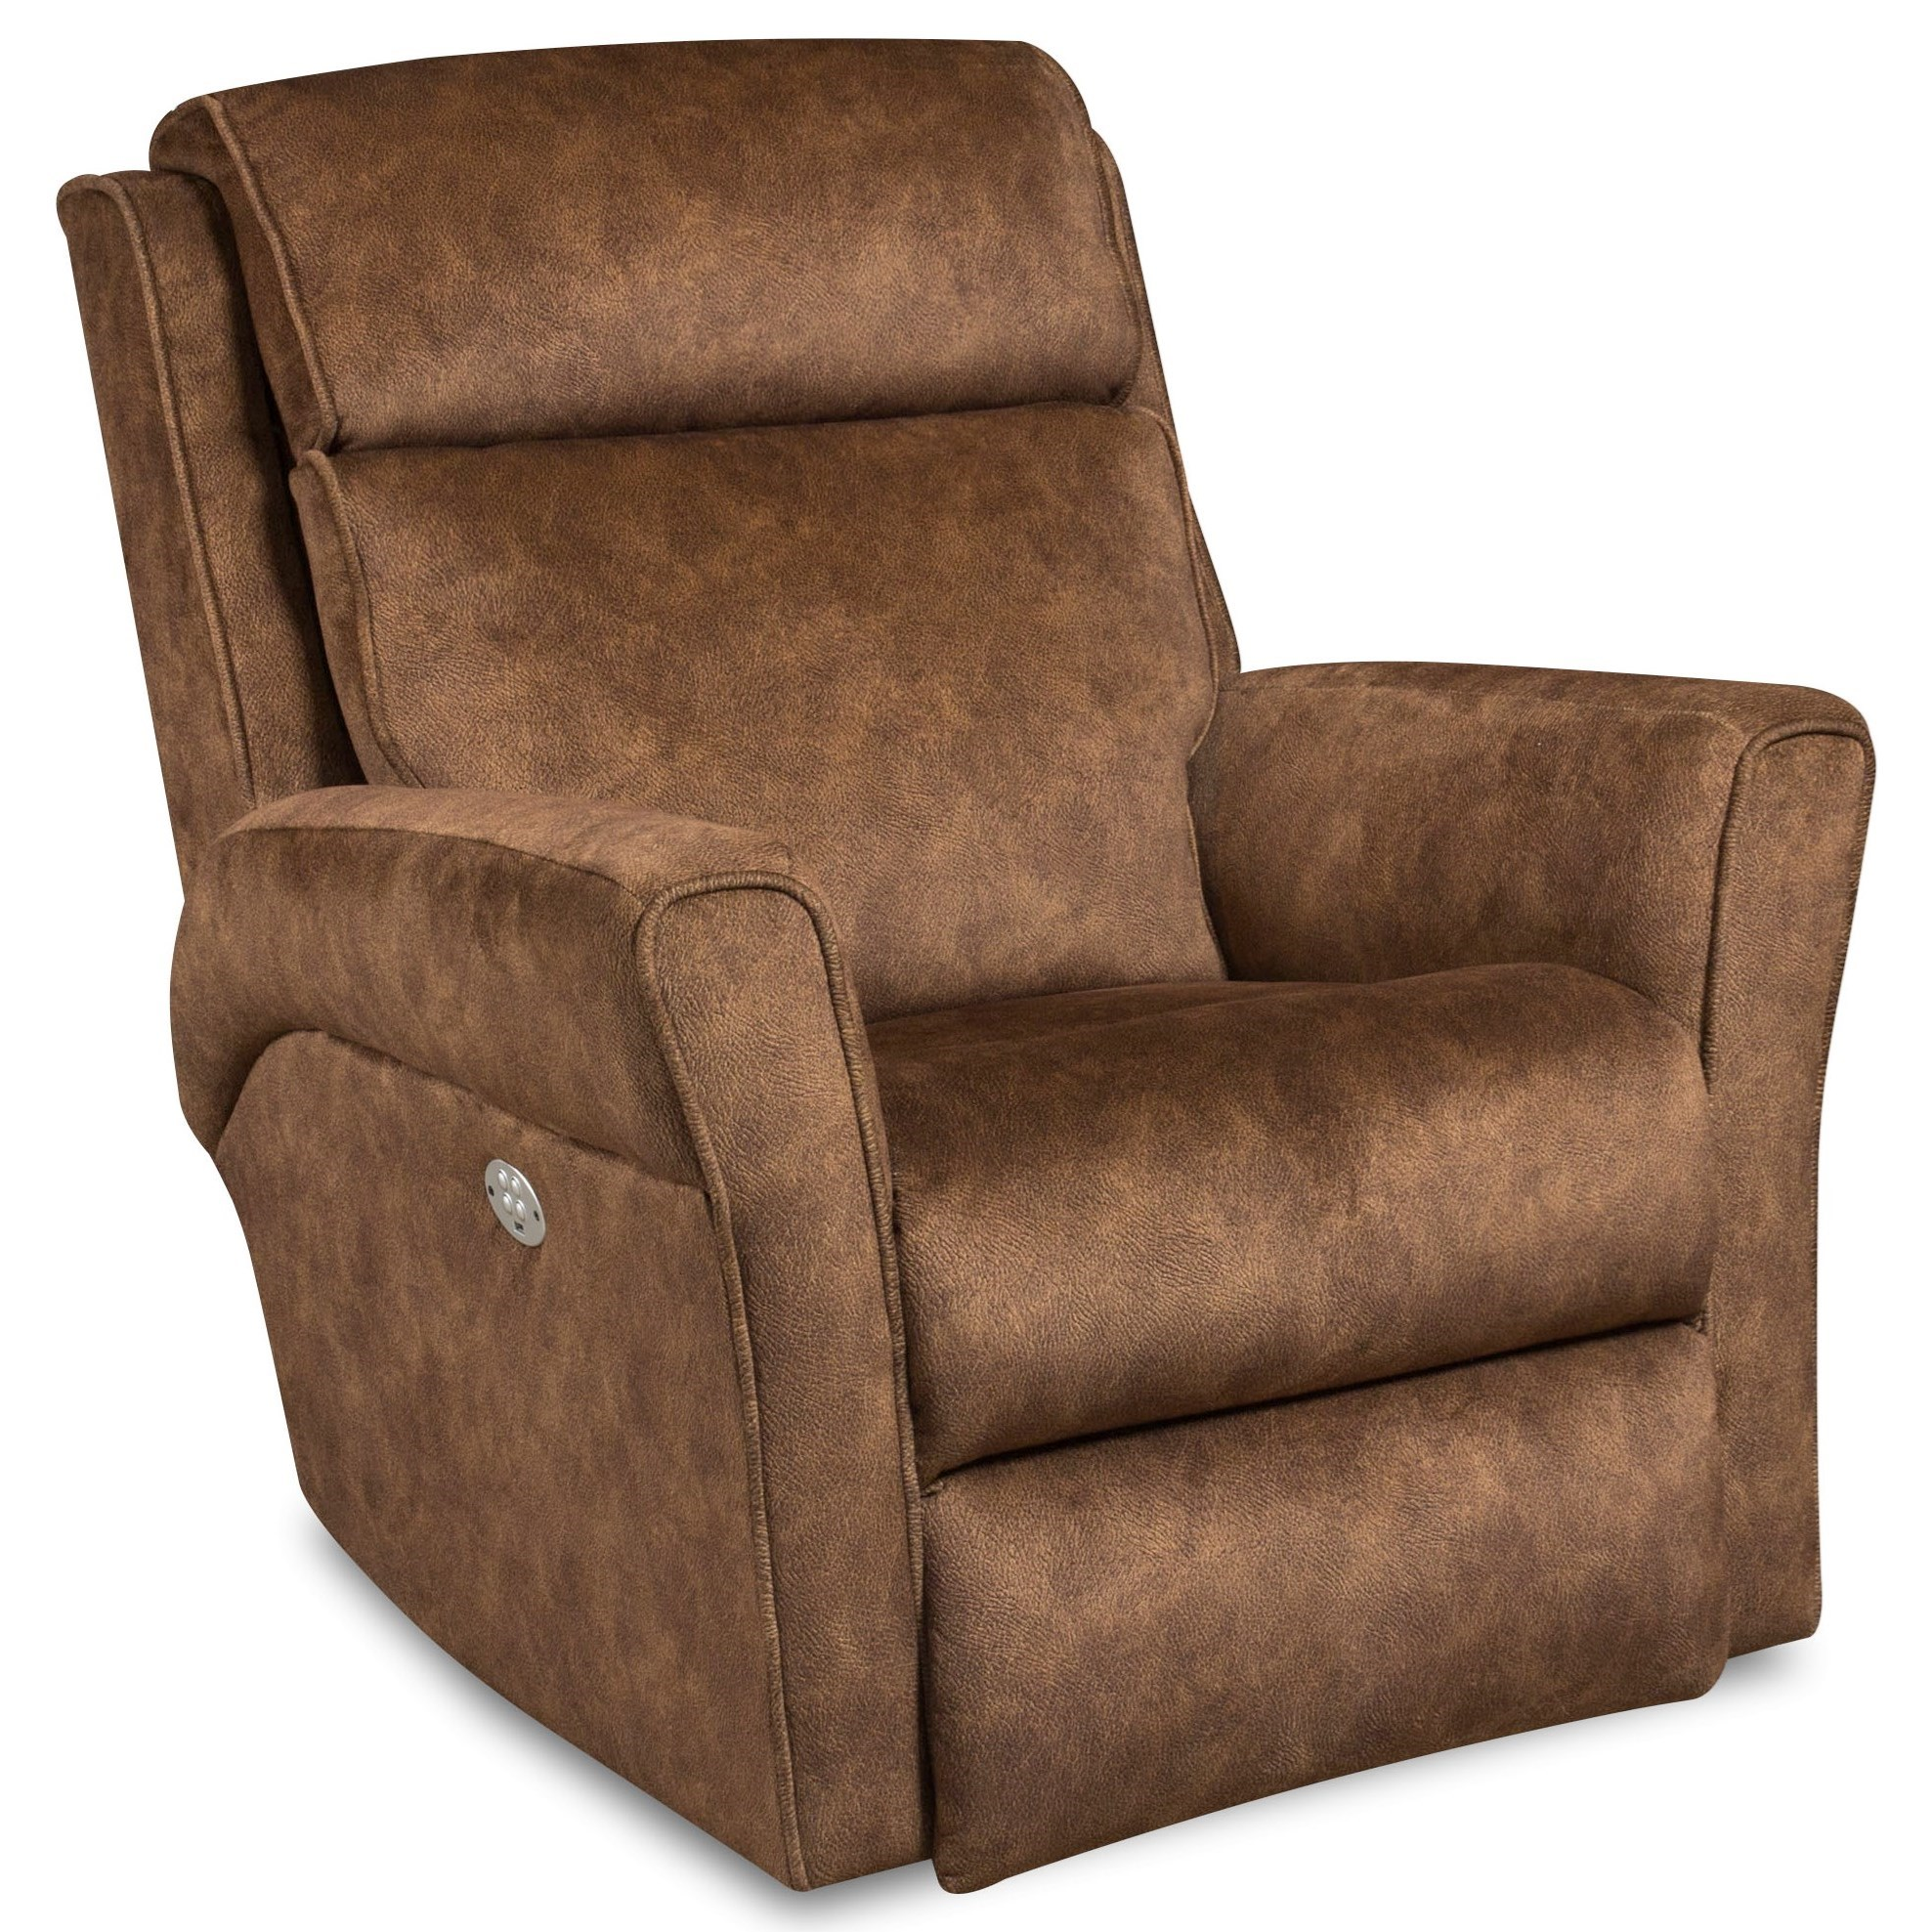 Southern Motion Recliners 1154 Radiate Rocker Recliner